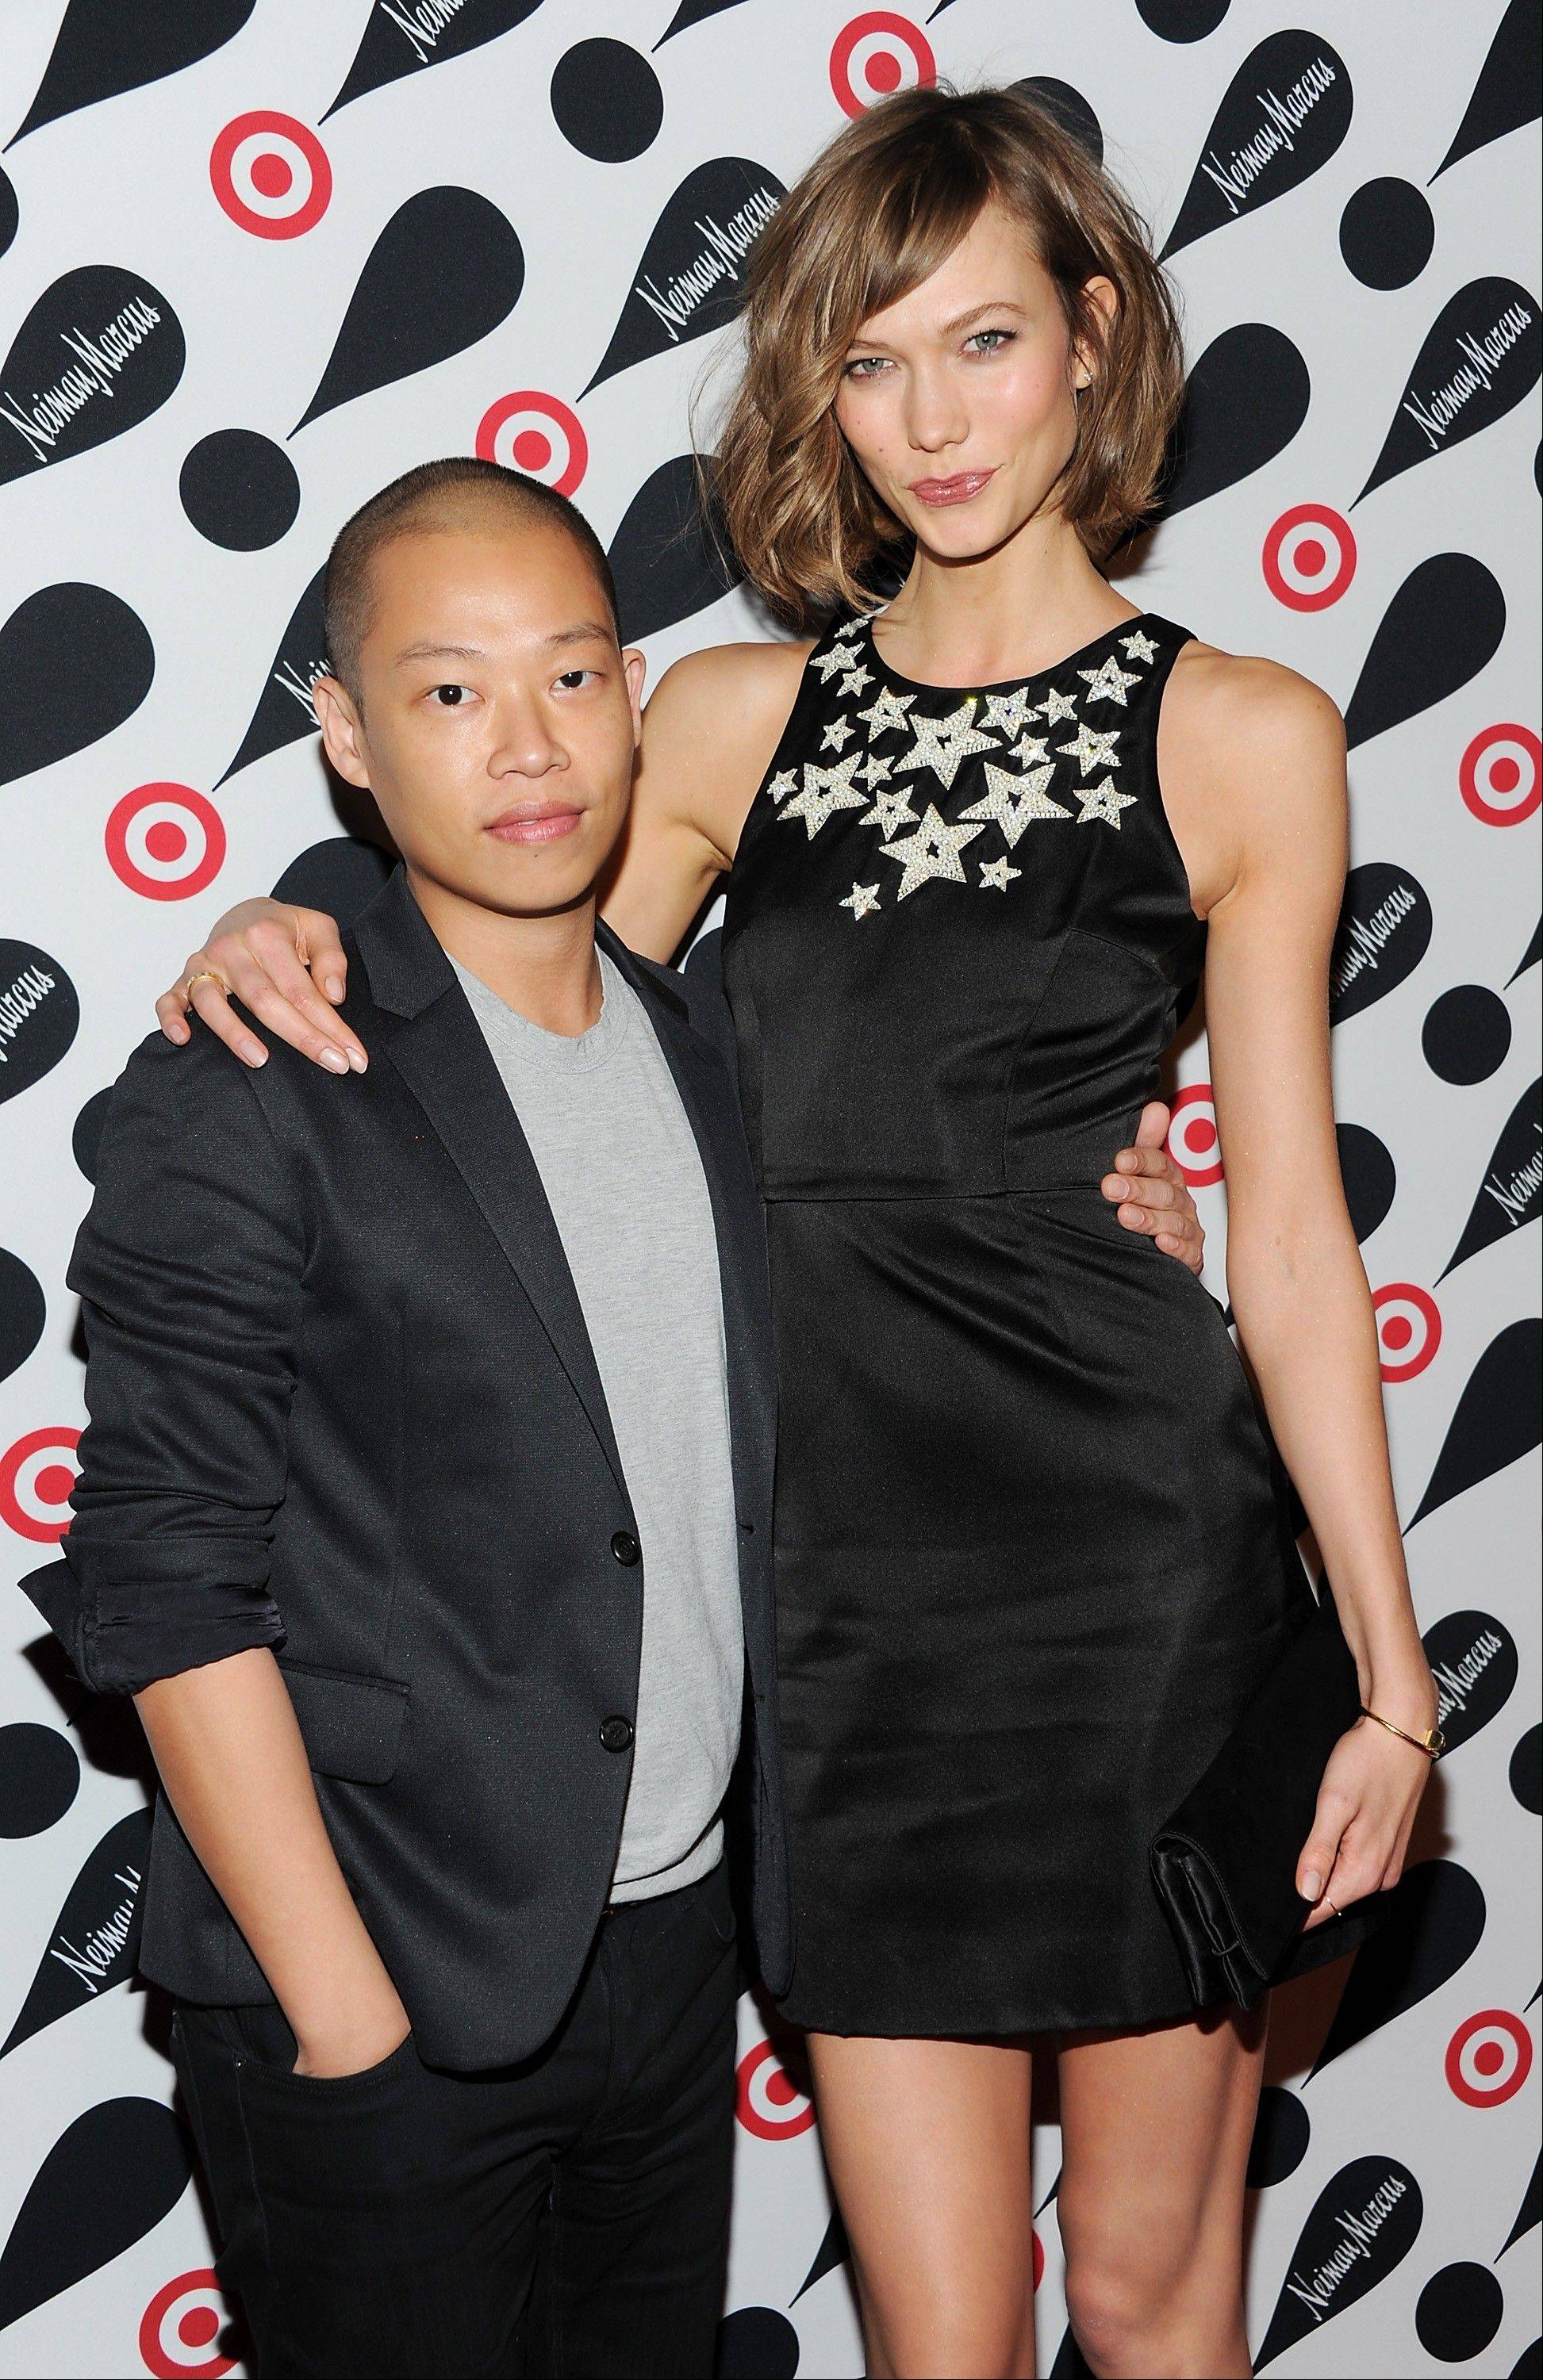 Designer Jason Wu and model Karlie Kloss attend the Target and Neiman Marcus holiday collection launch in New York.